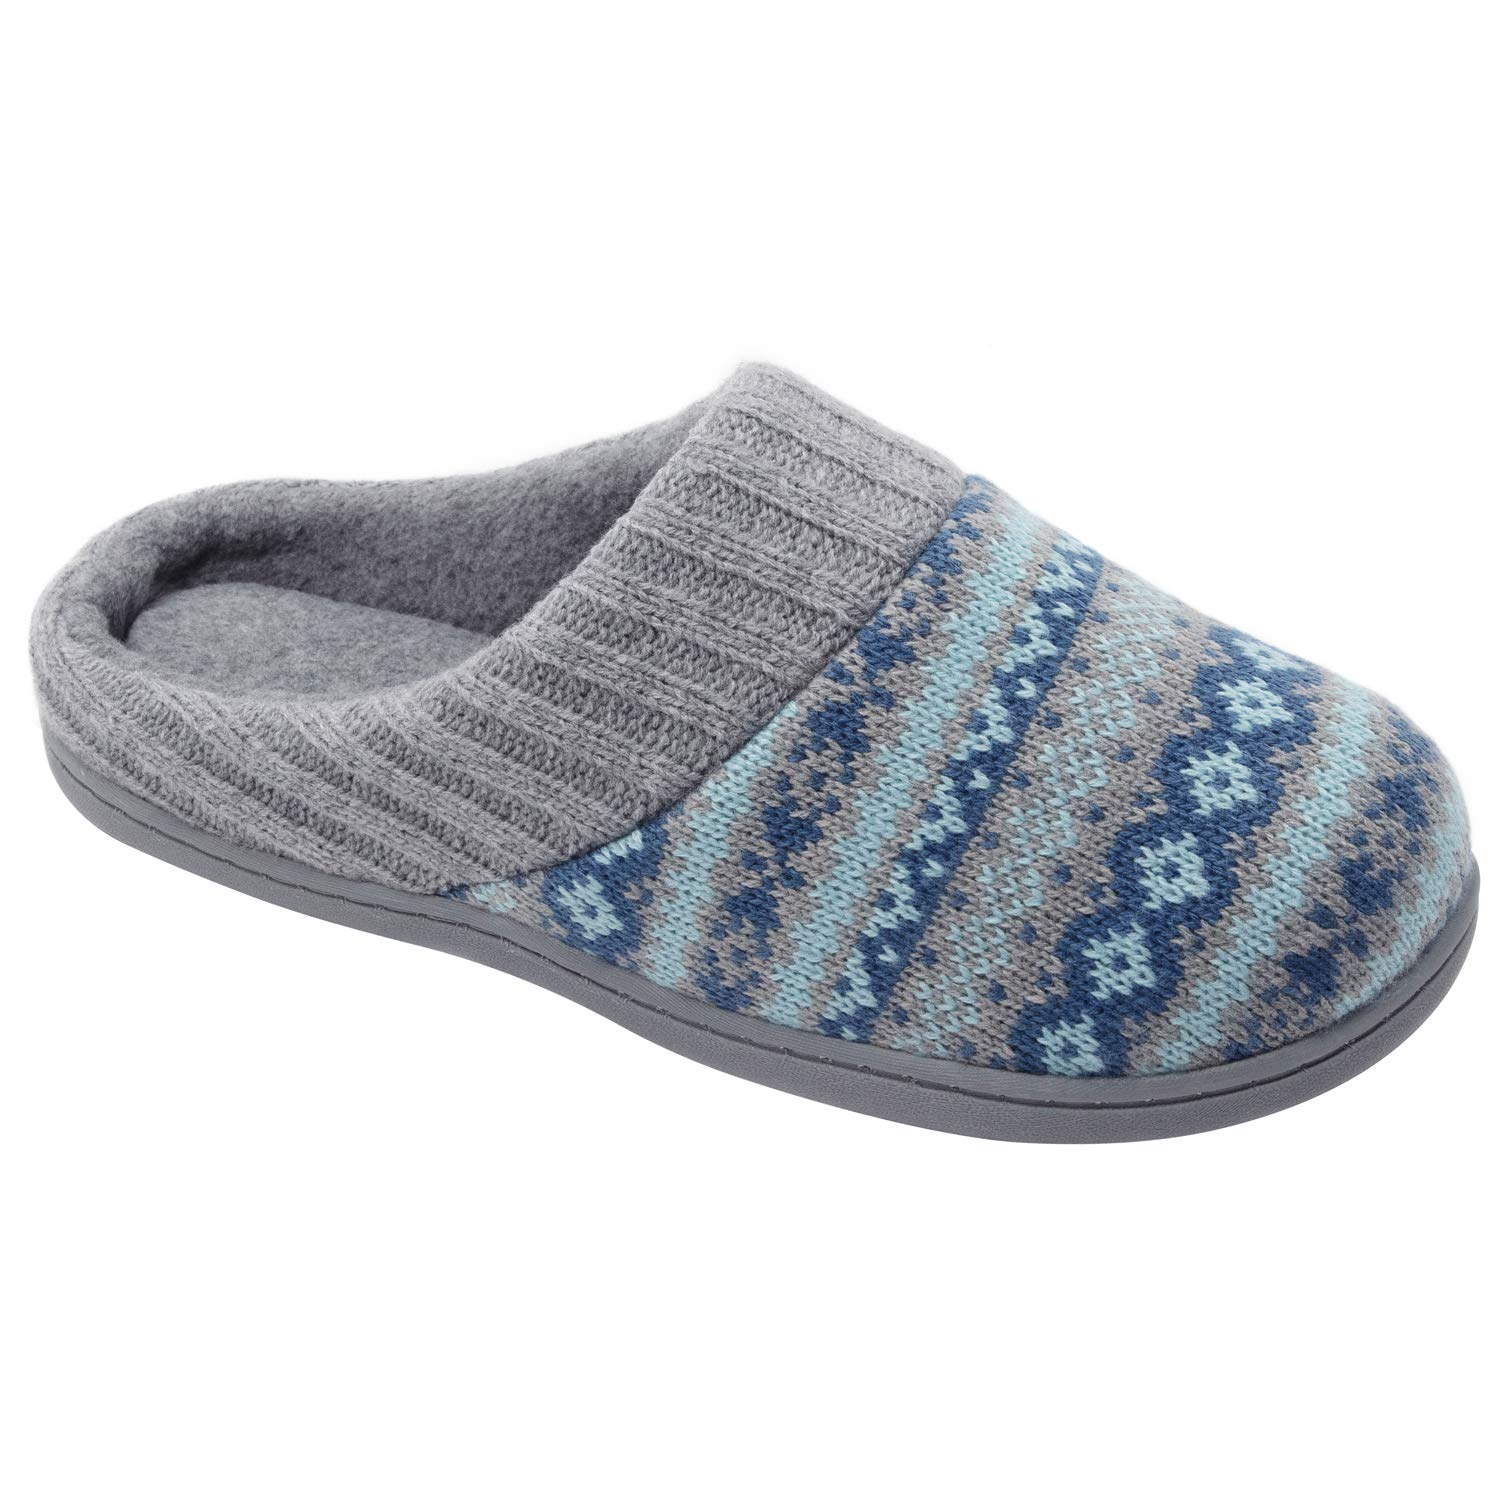 RockDove Sweater Knit Scuff Slippers for Women (9-10 B(M) US, Teal Blue)